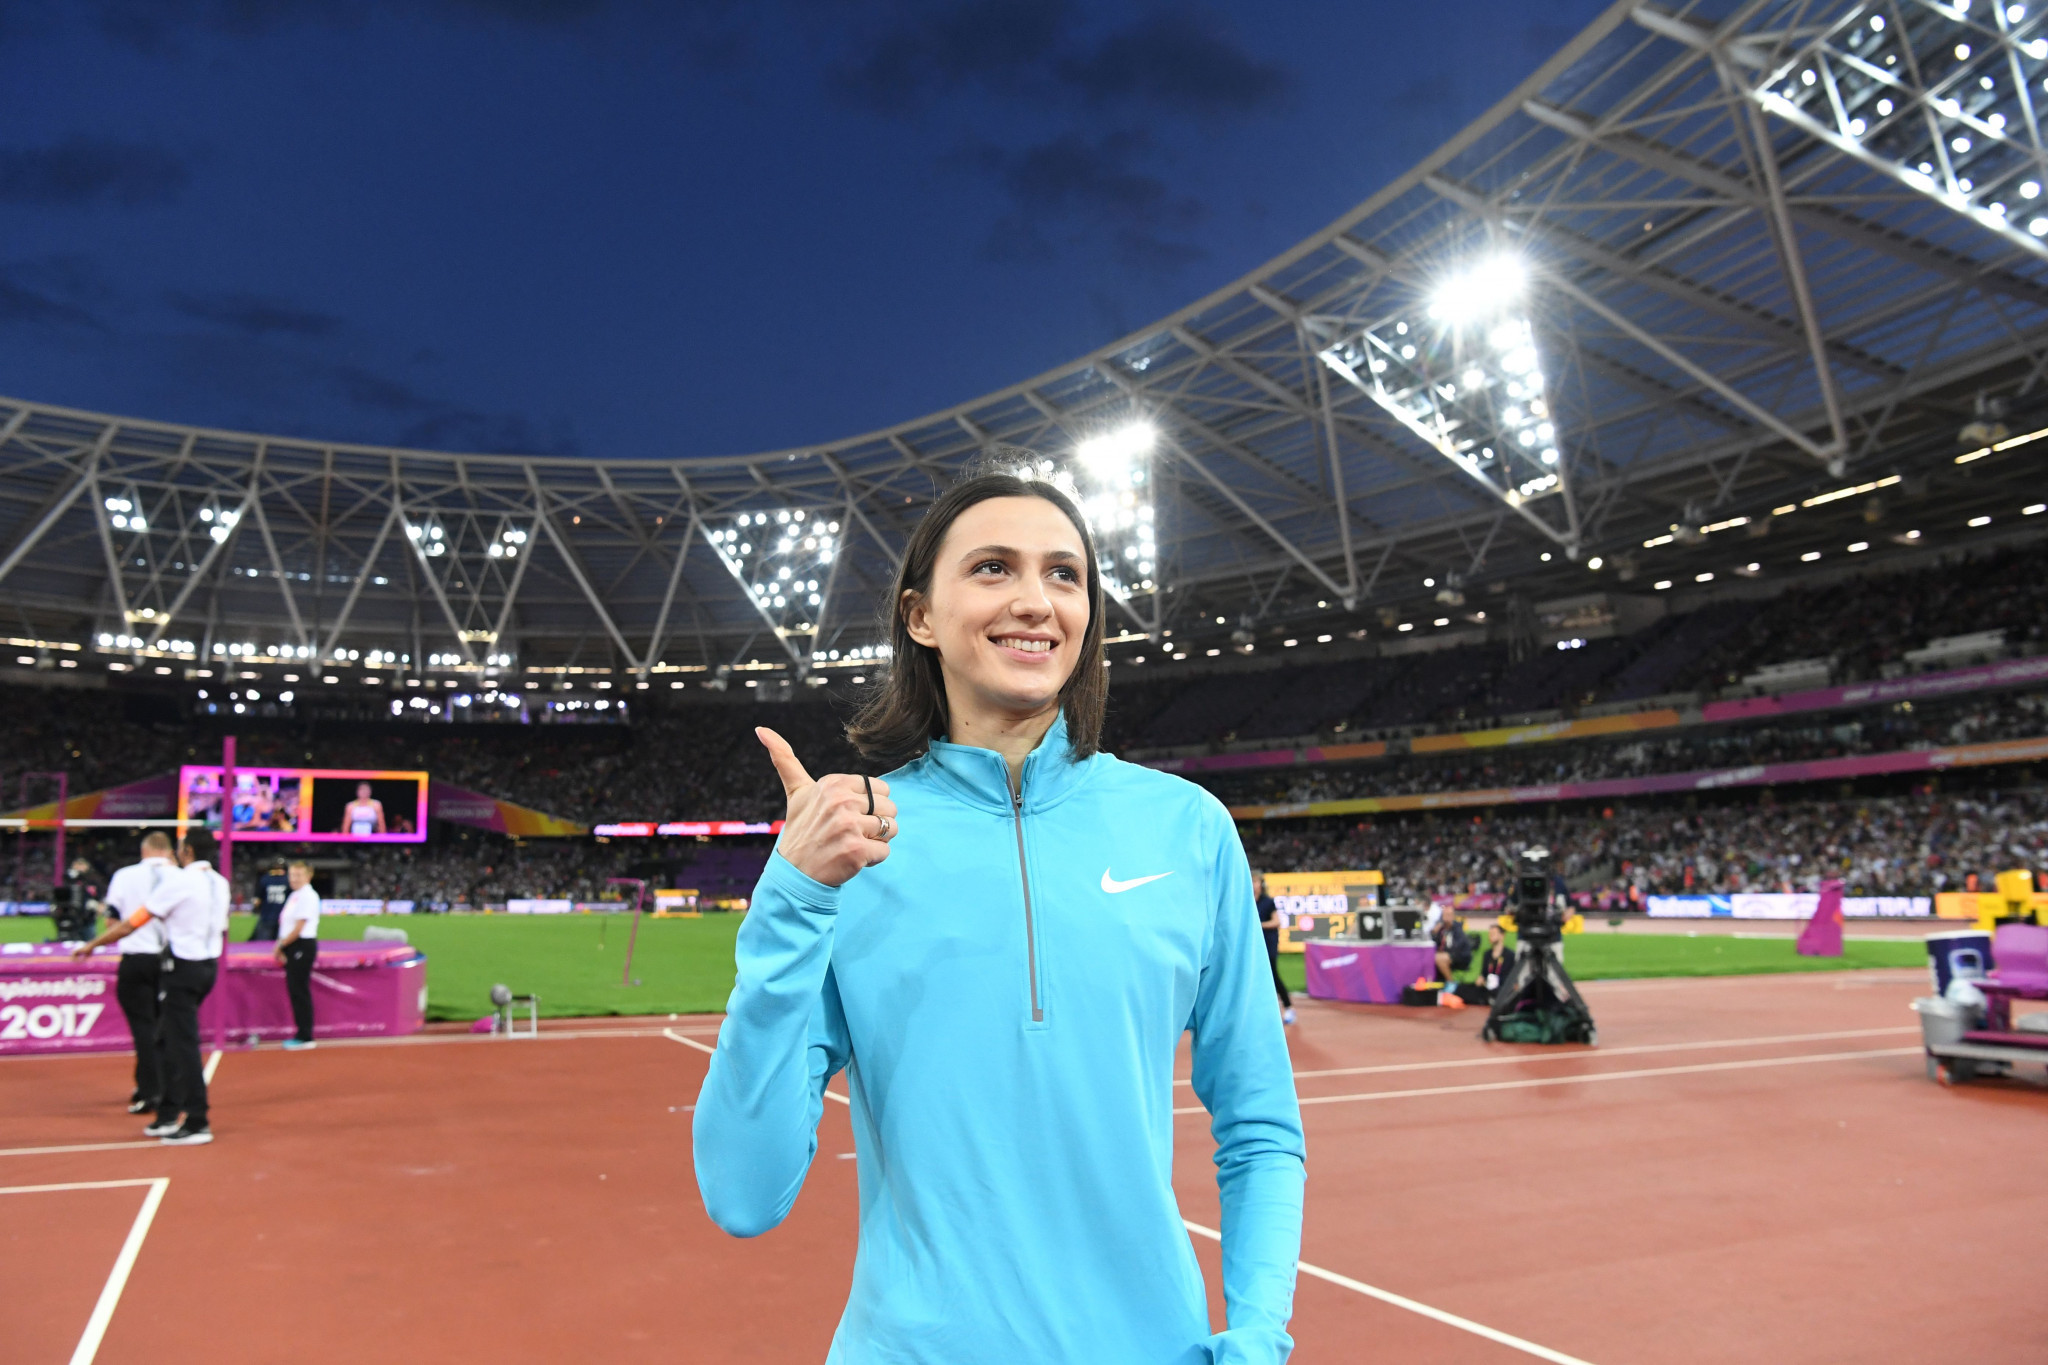 Russians, including high jump gold medallist Mariya Lasitskene, competed as Authorised Neutral Athletes at the 2017 IAAF World Championships in London ©Getty Images